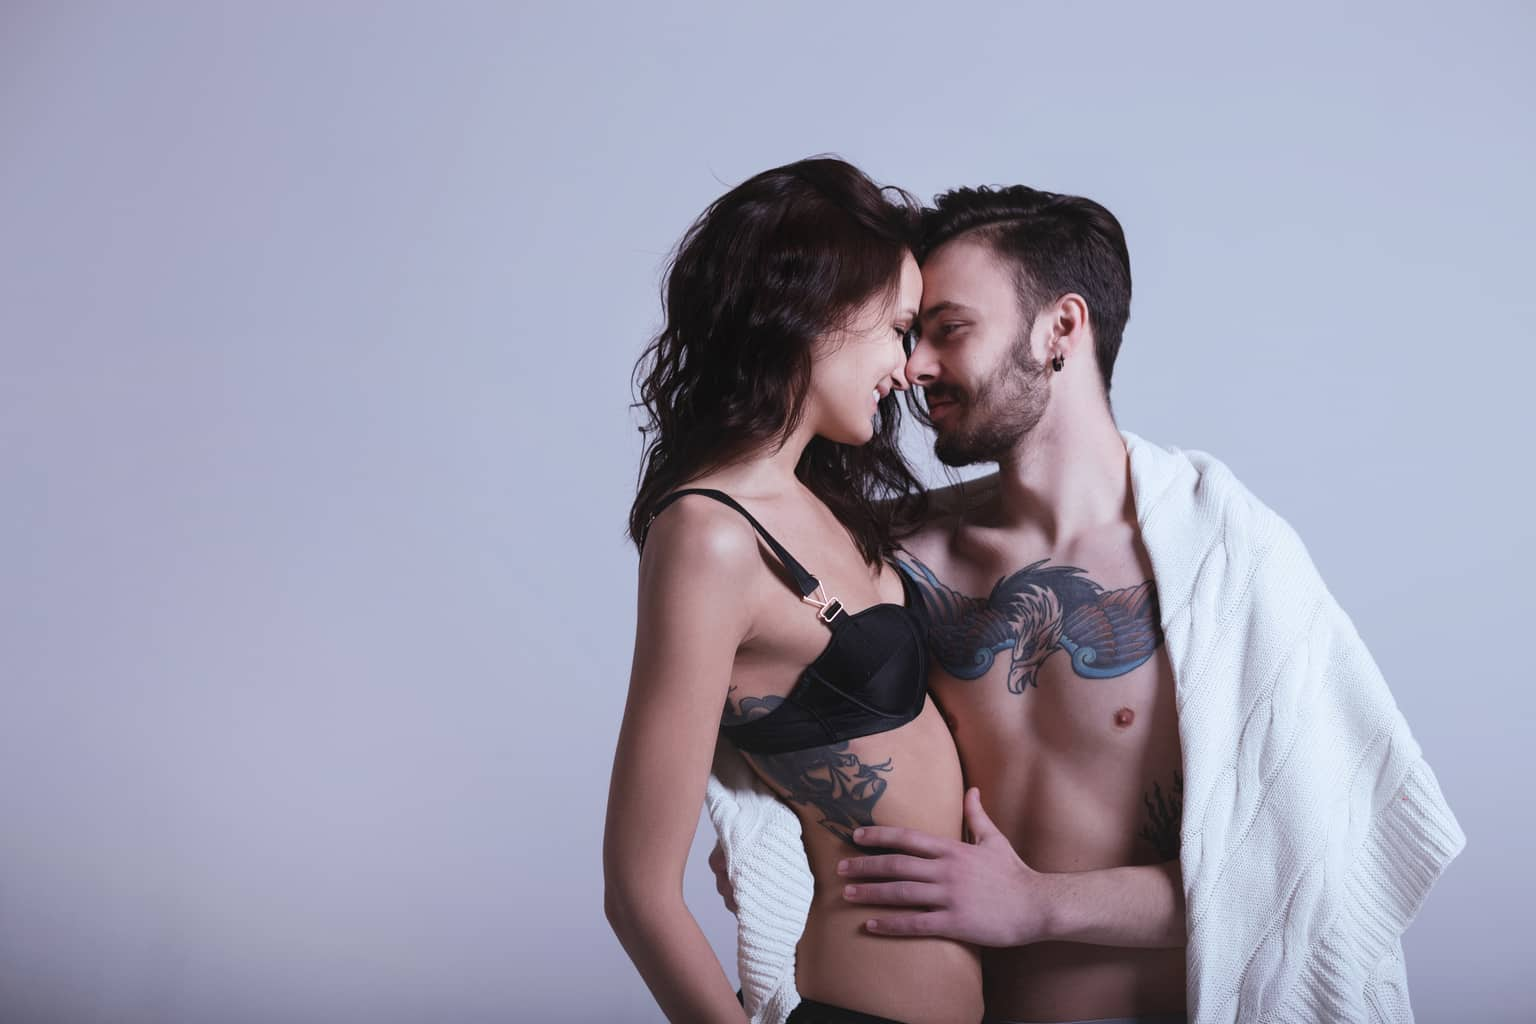 Does Having More Sex Raise Testosterone Levels in Men?